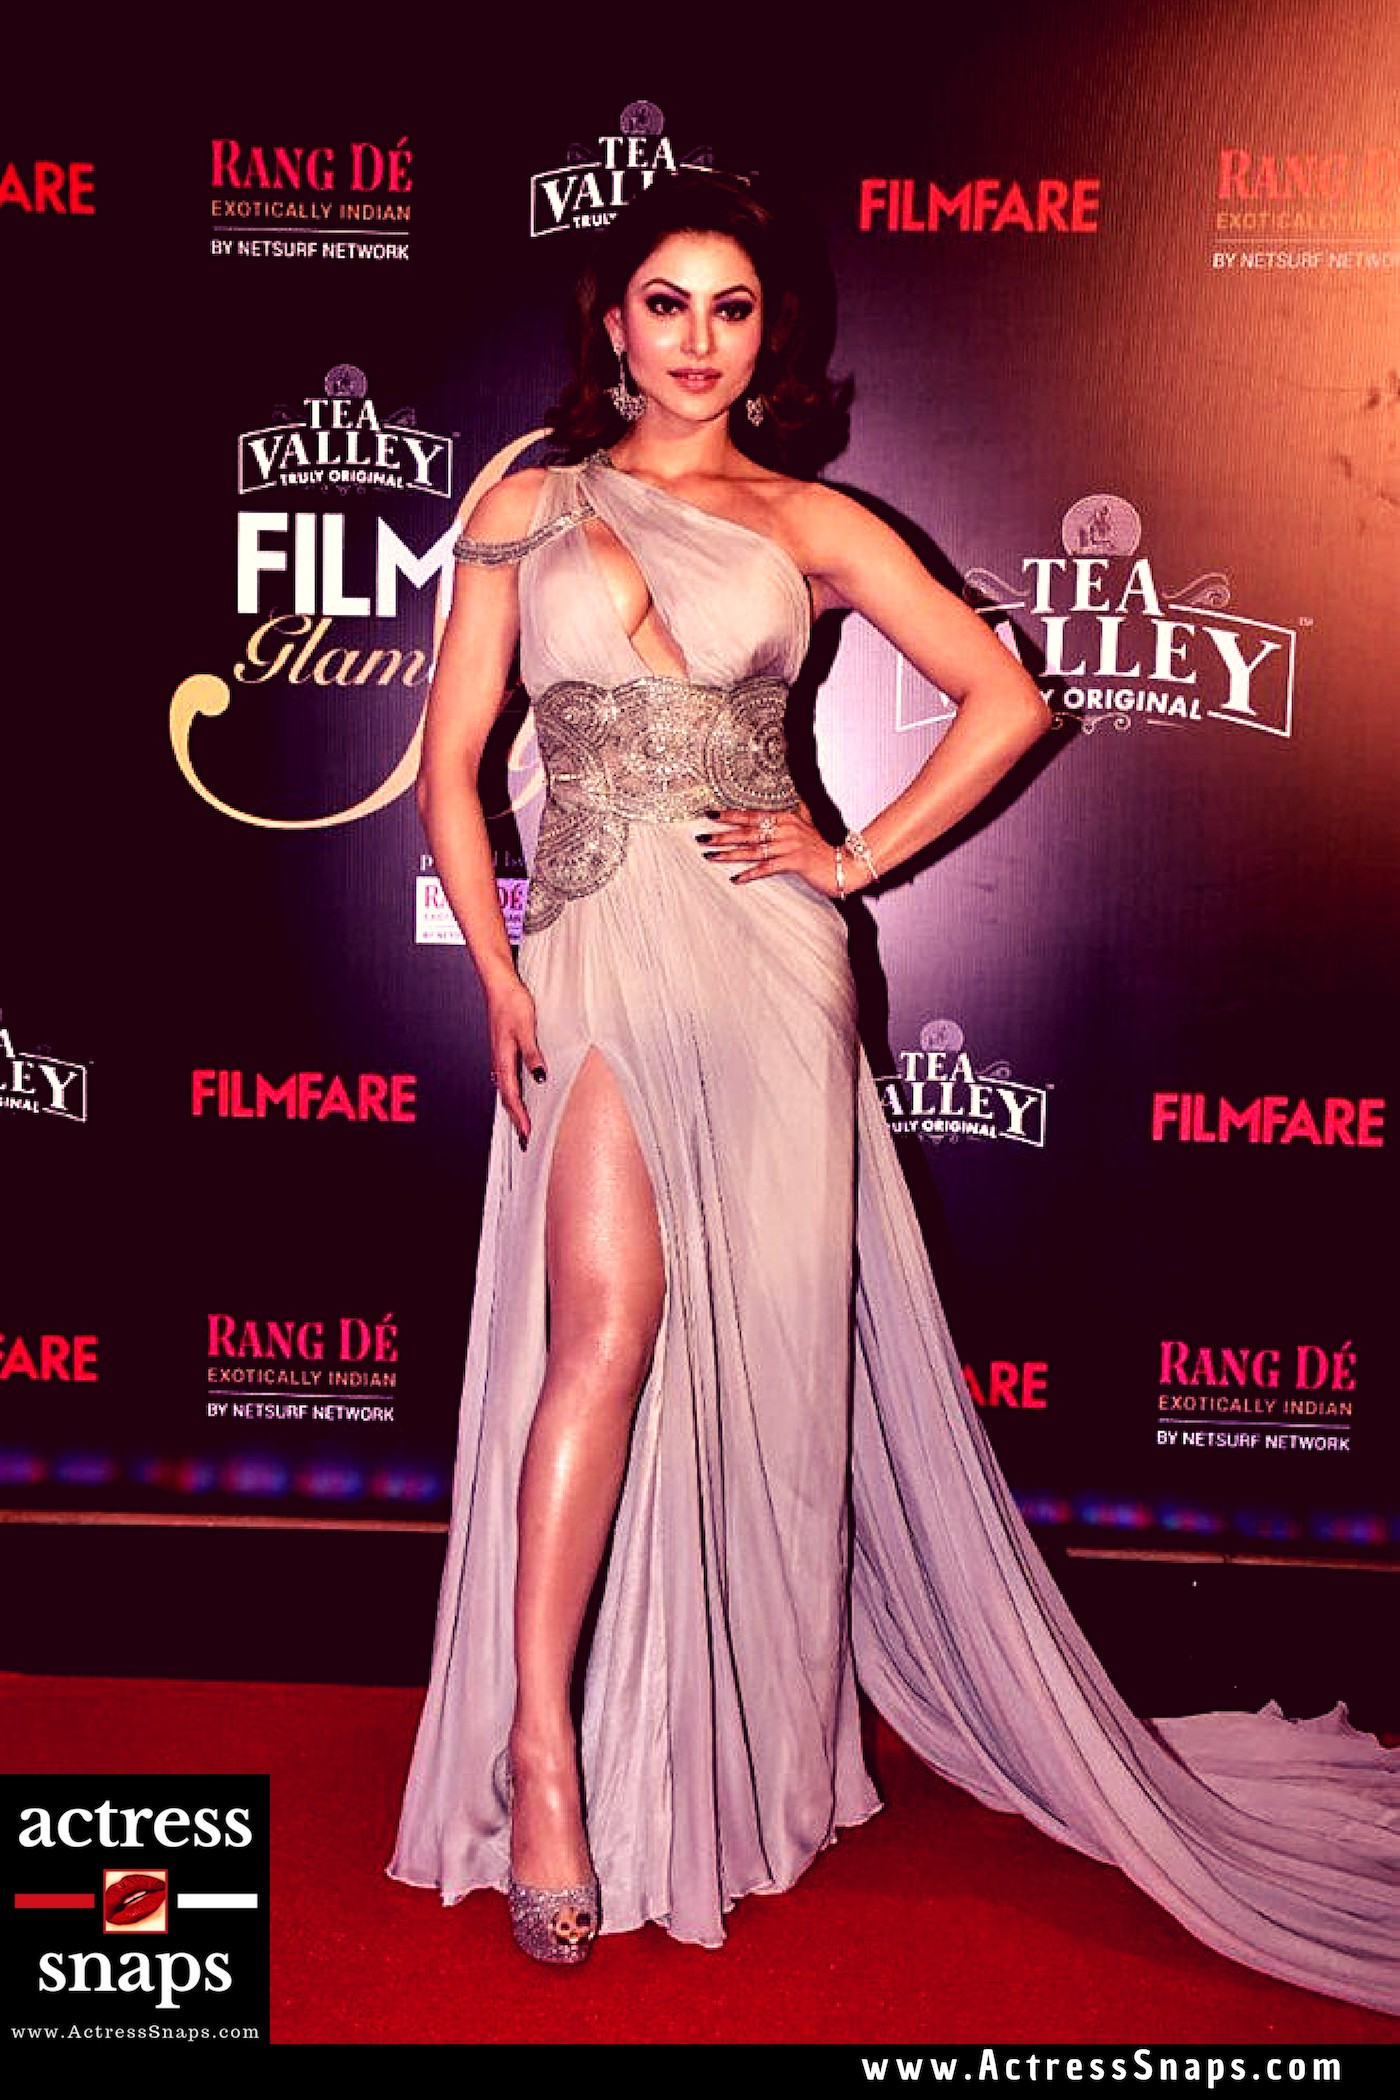 Urvashi Rautela at Filmfare Event - Sexy Actress Pictures | Hot Actress Pictures - ActressSnaps.com